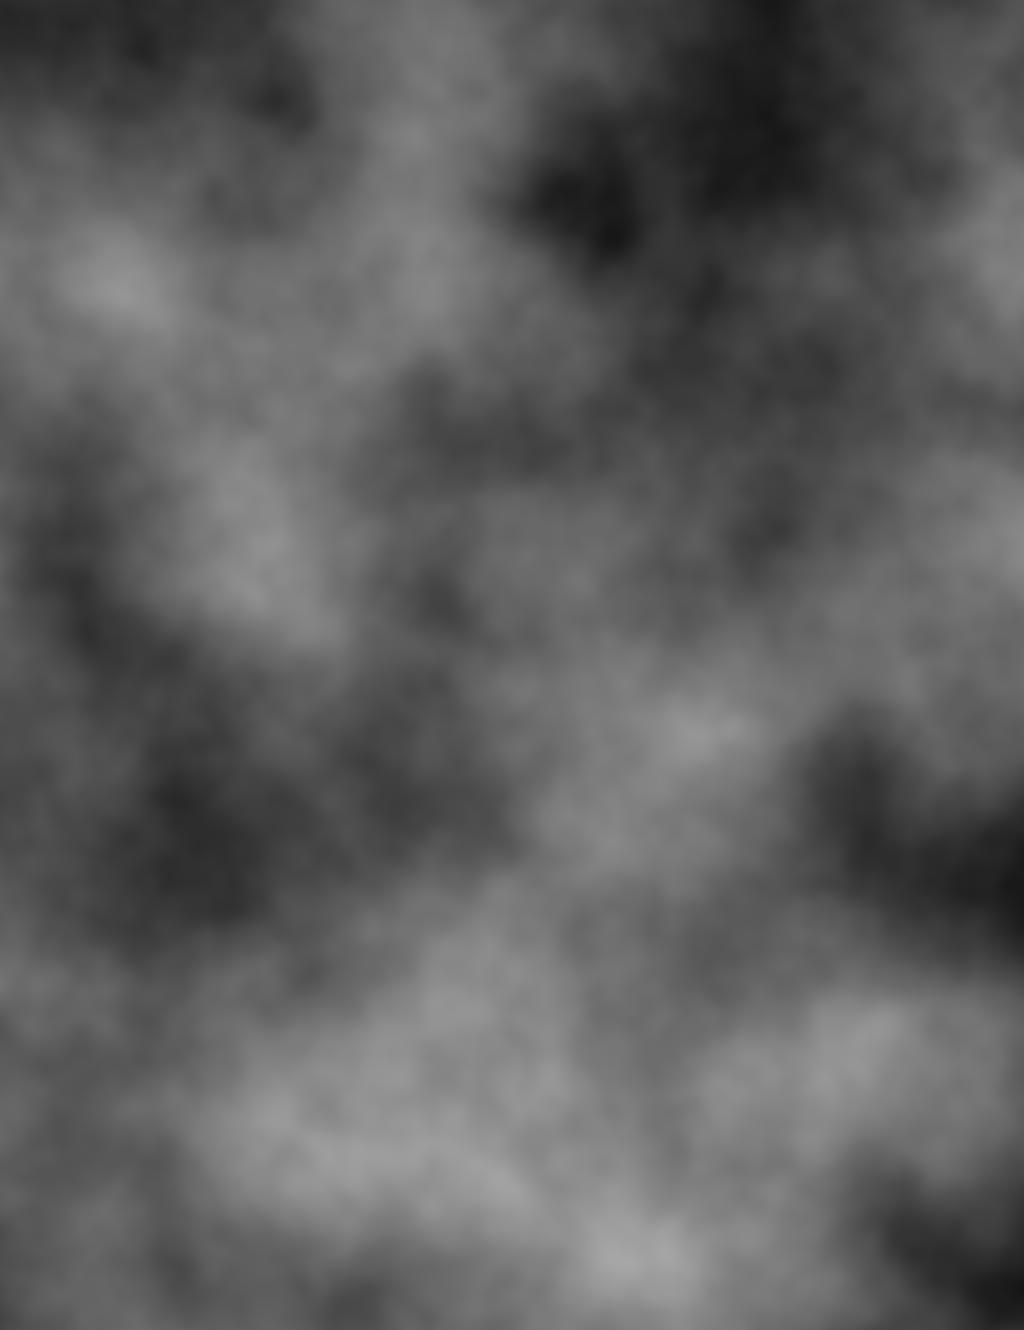 Clouds or  Fog Texture 2